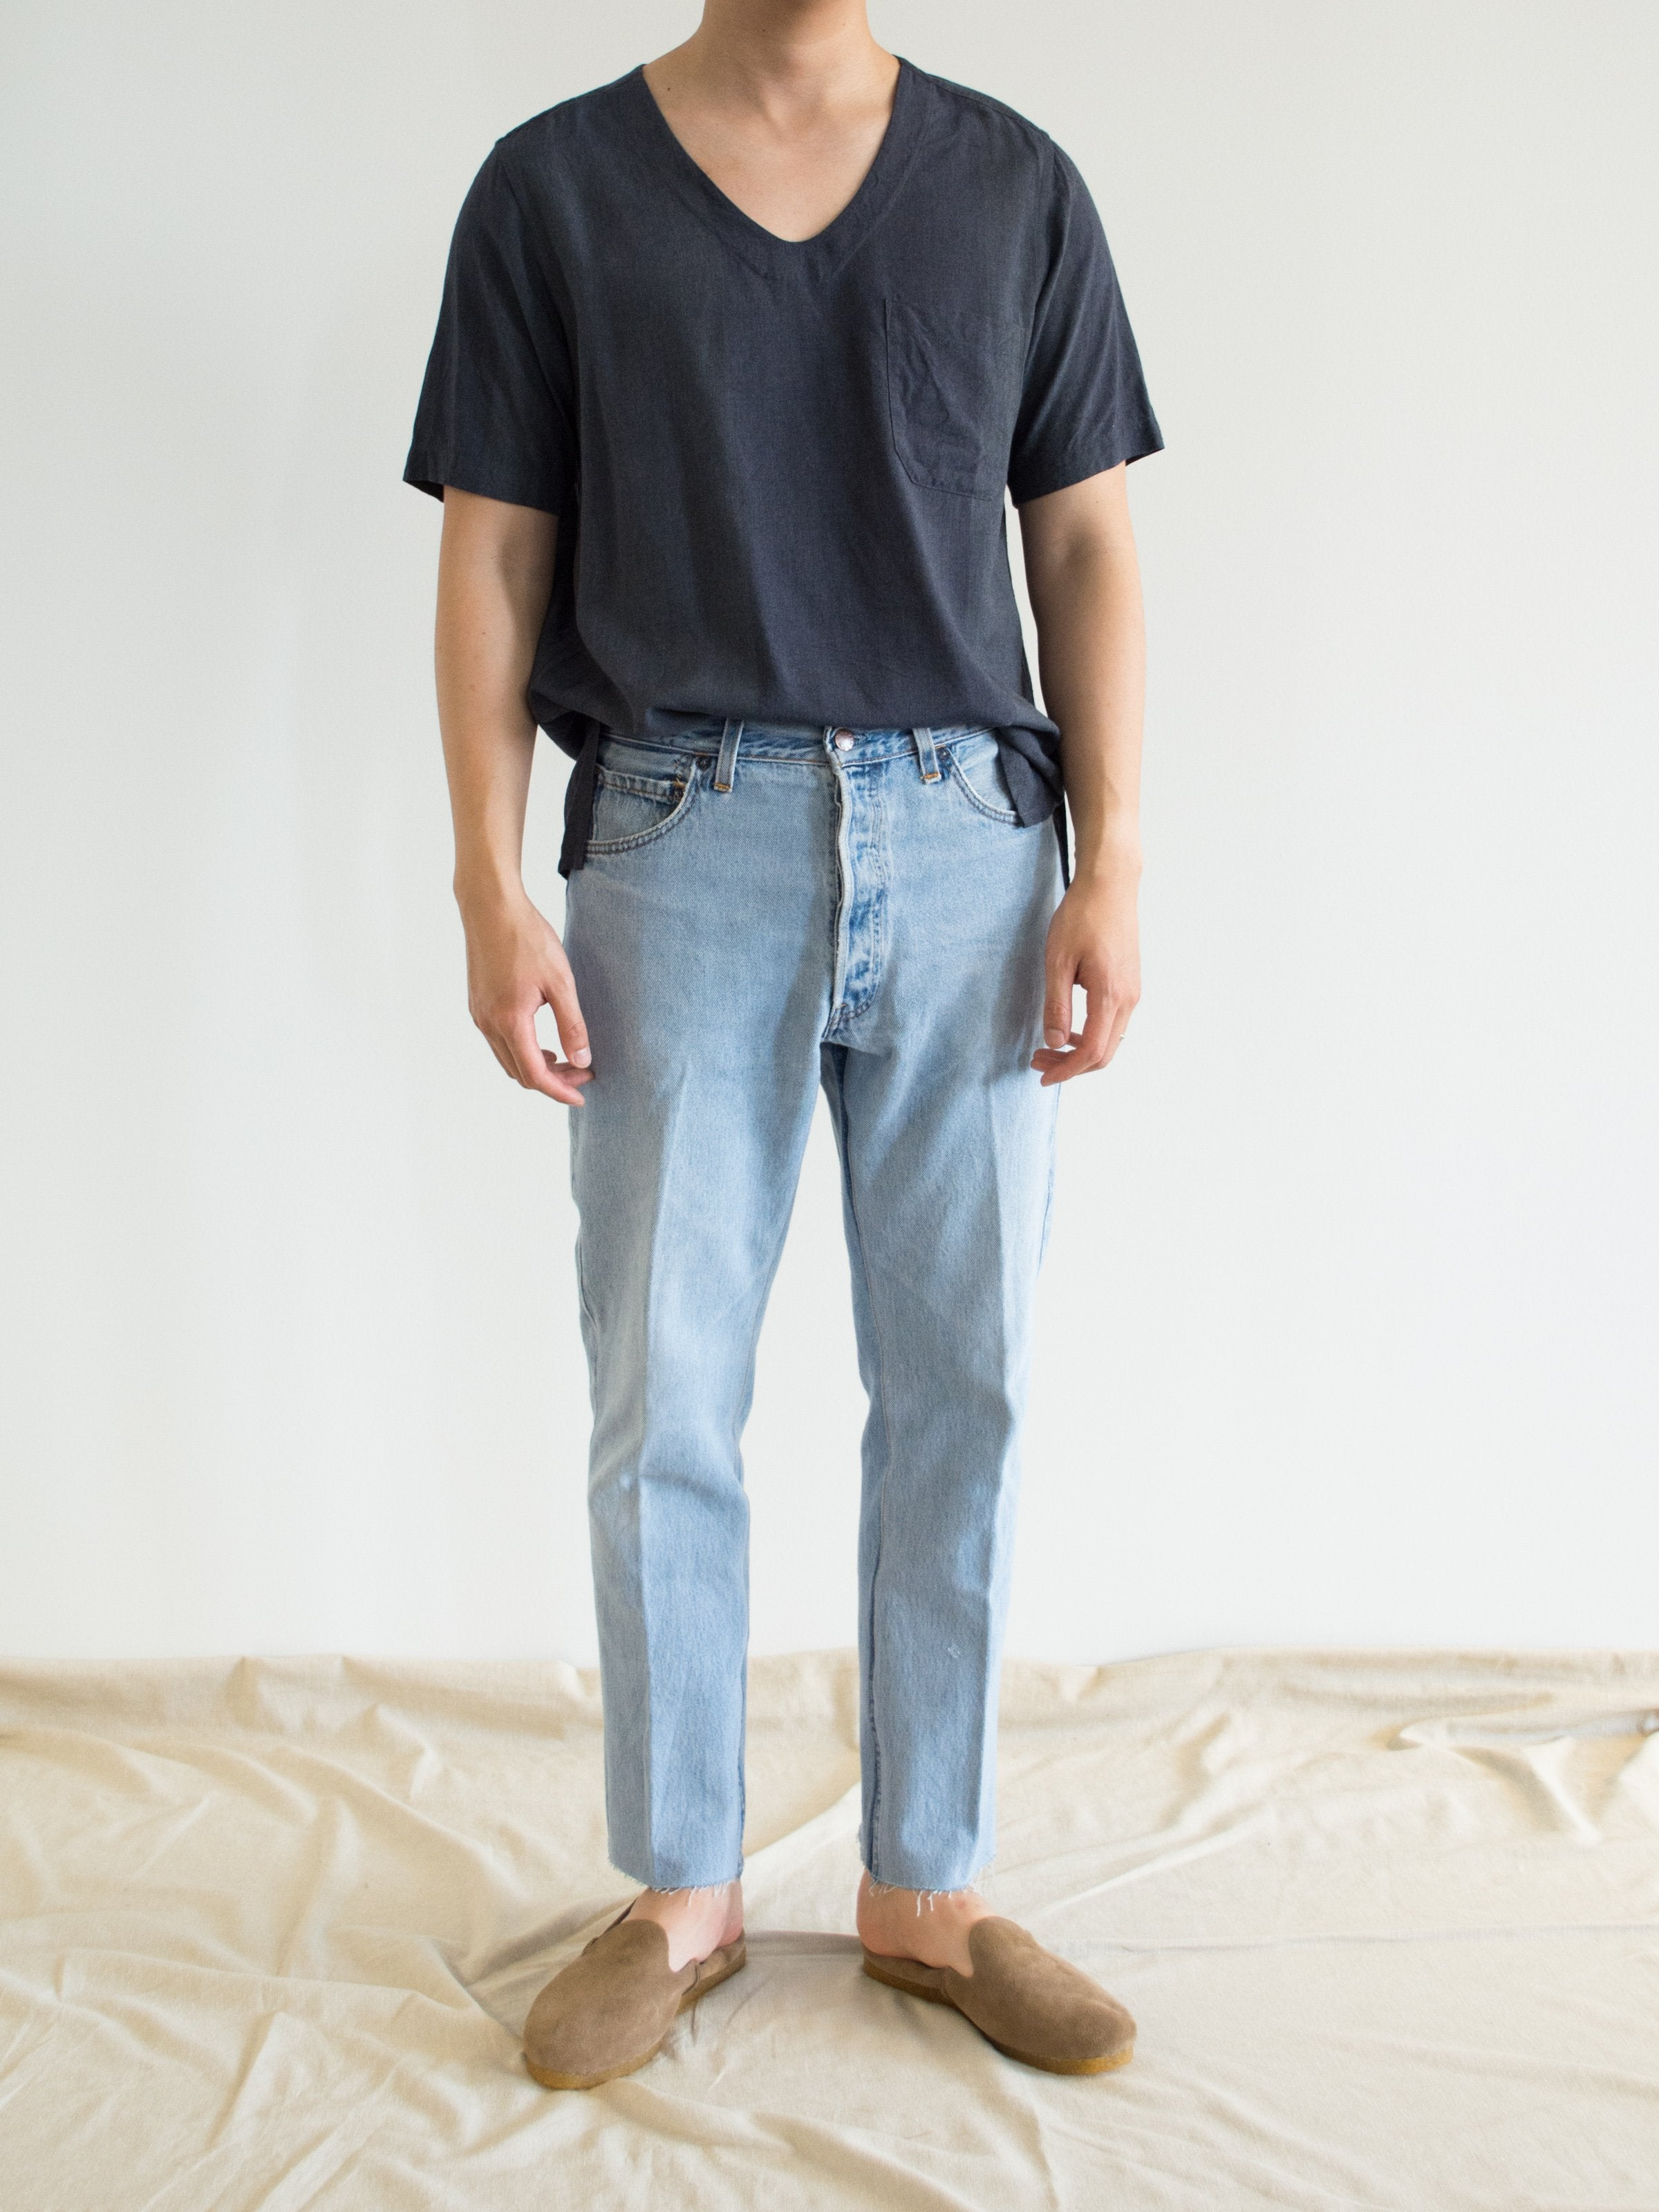 Namu Shop - Niche Re-suggestion: Pampa Flare Jeans